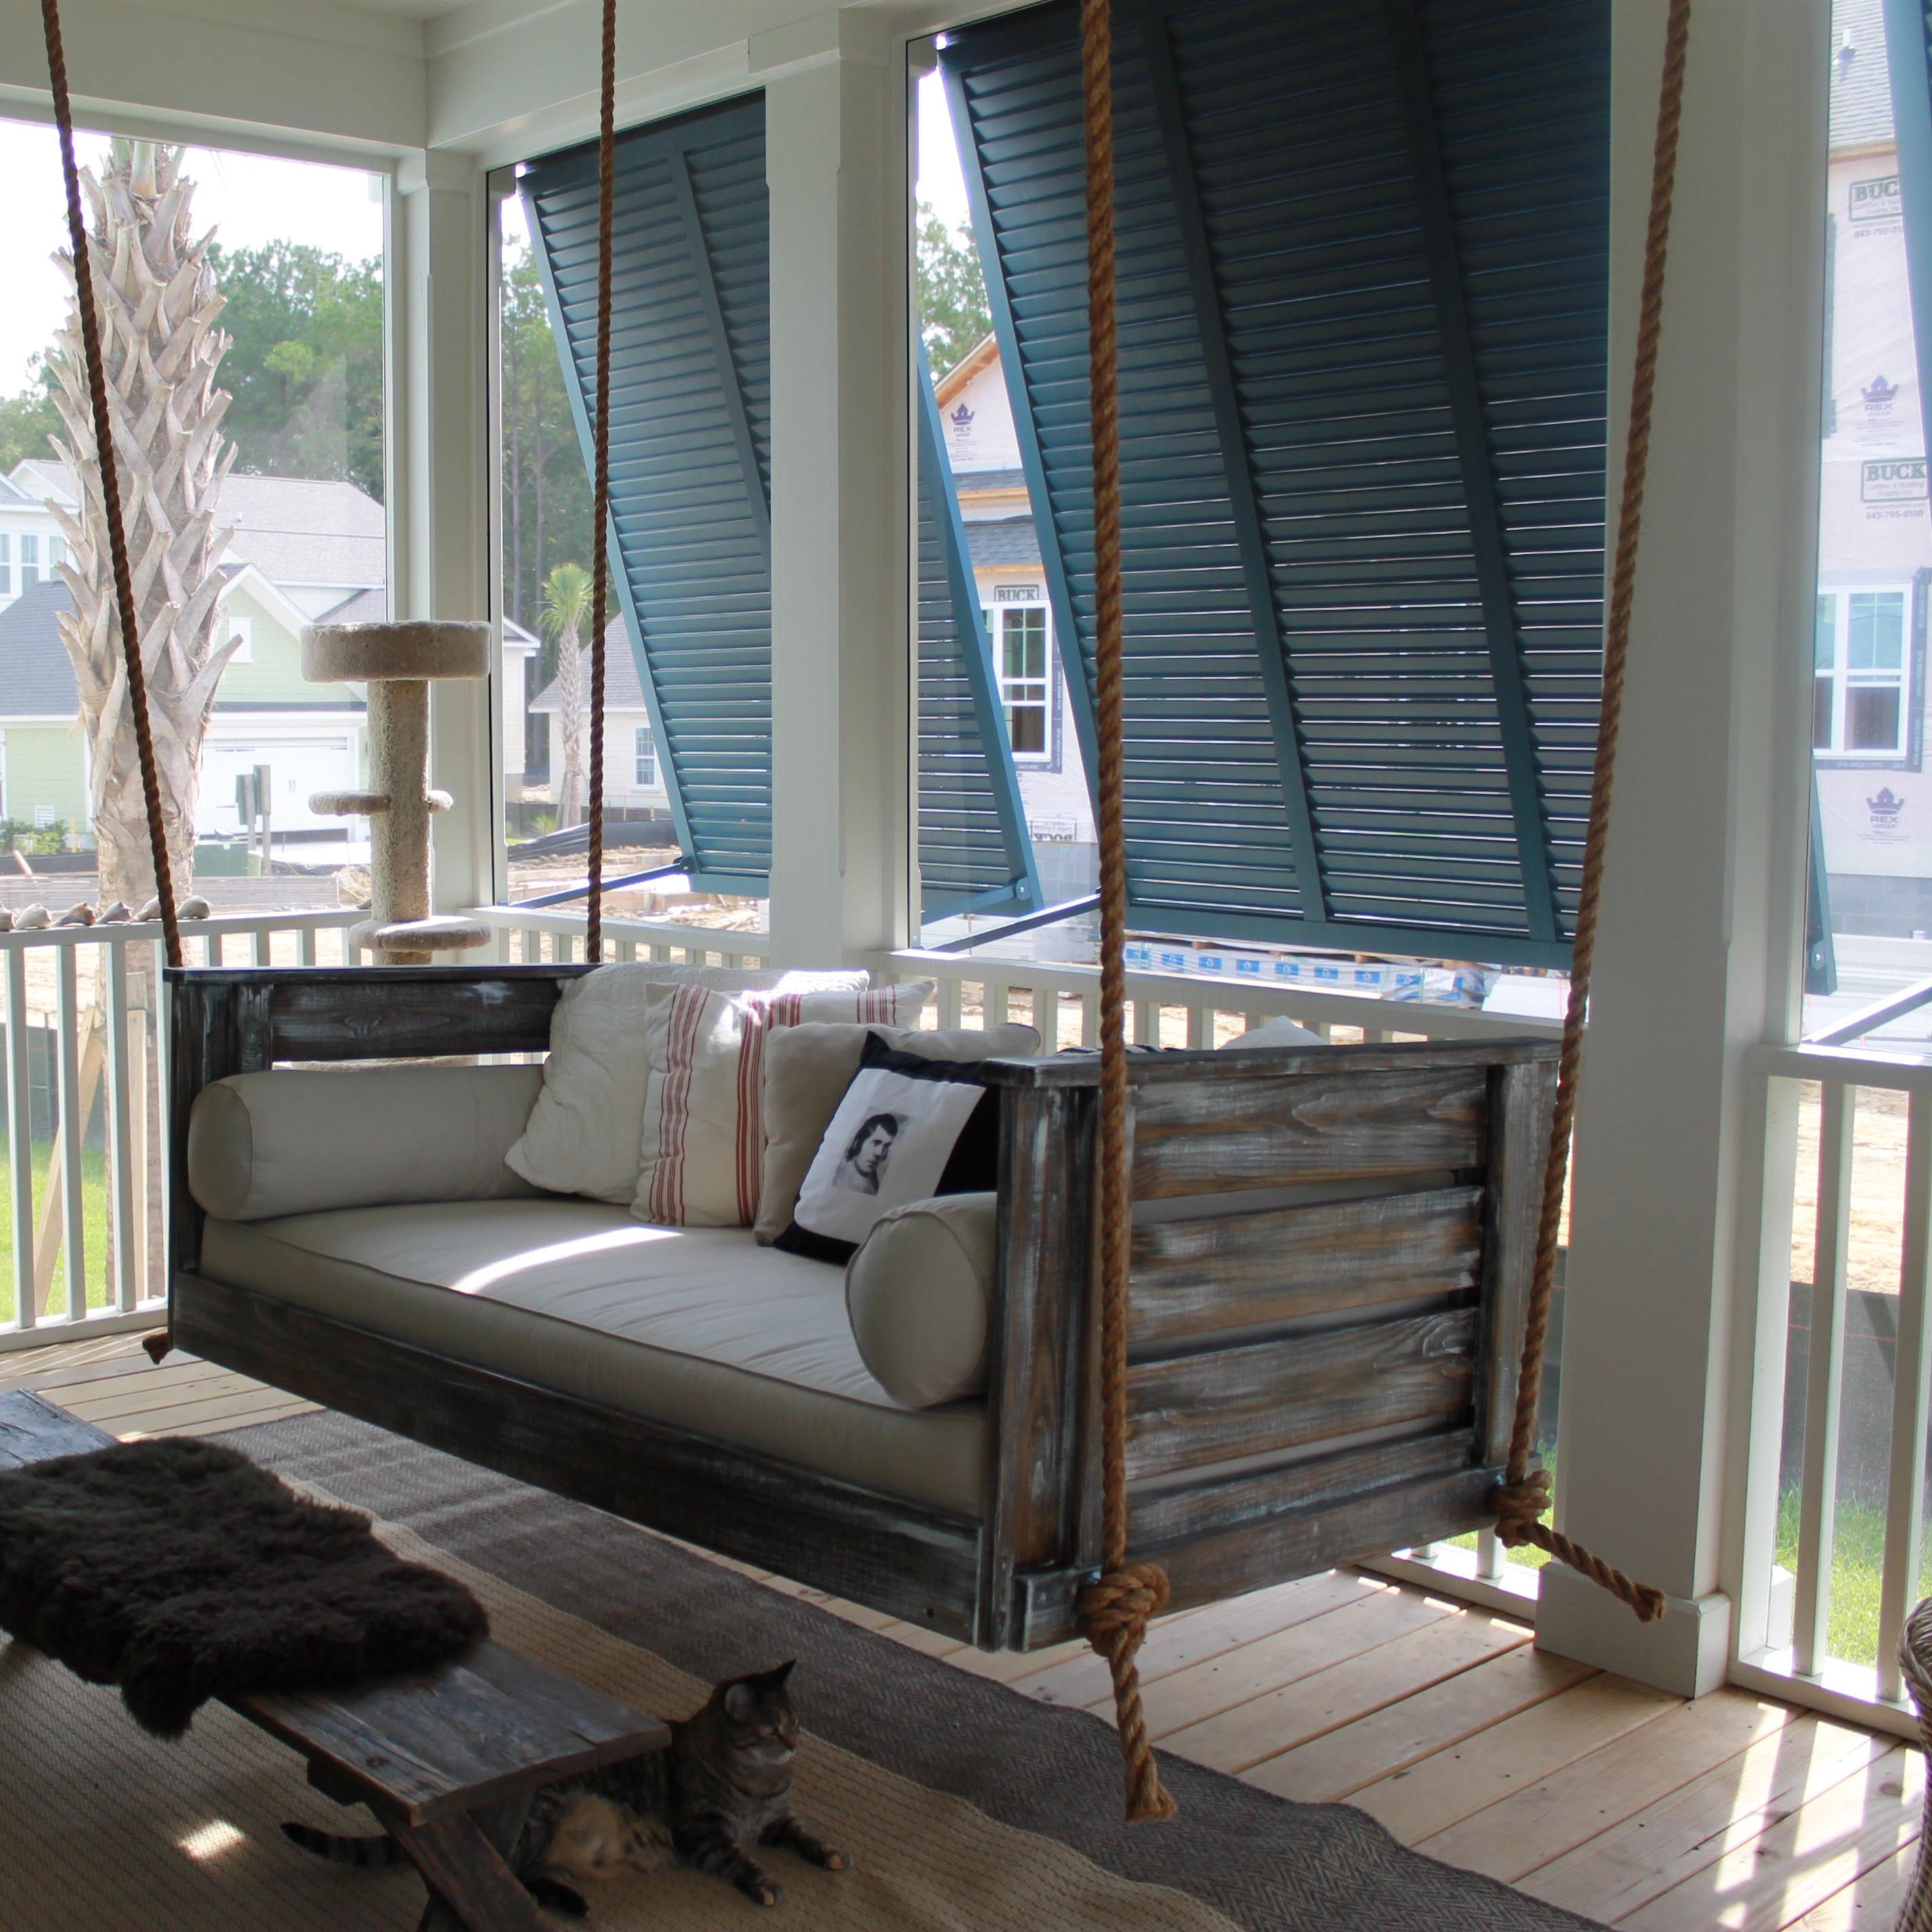 Getting ready for summer enliven your porch with comfy swings solutioingenieria Gallery